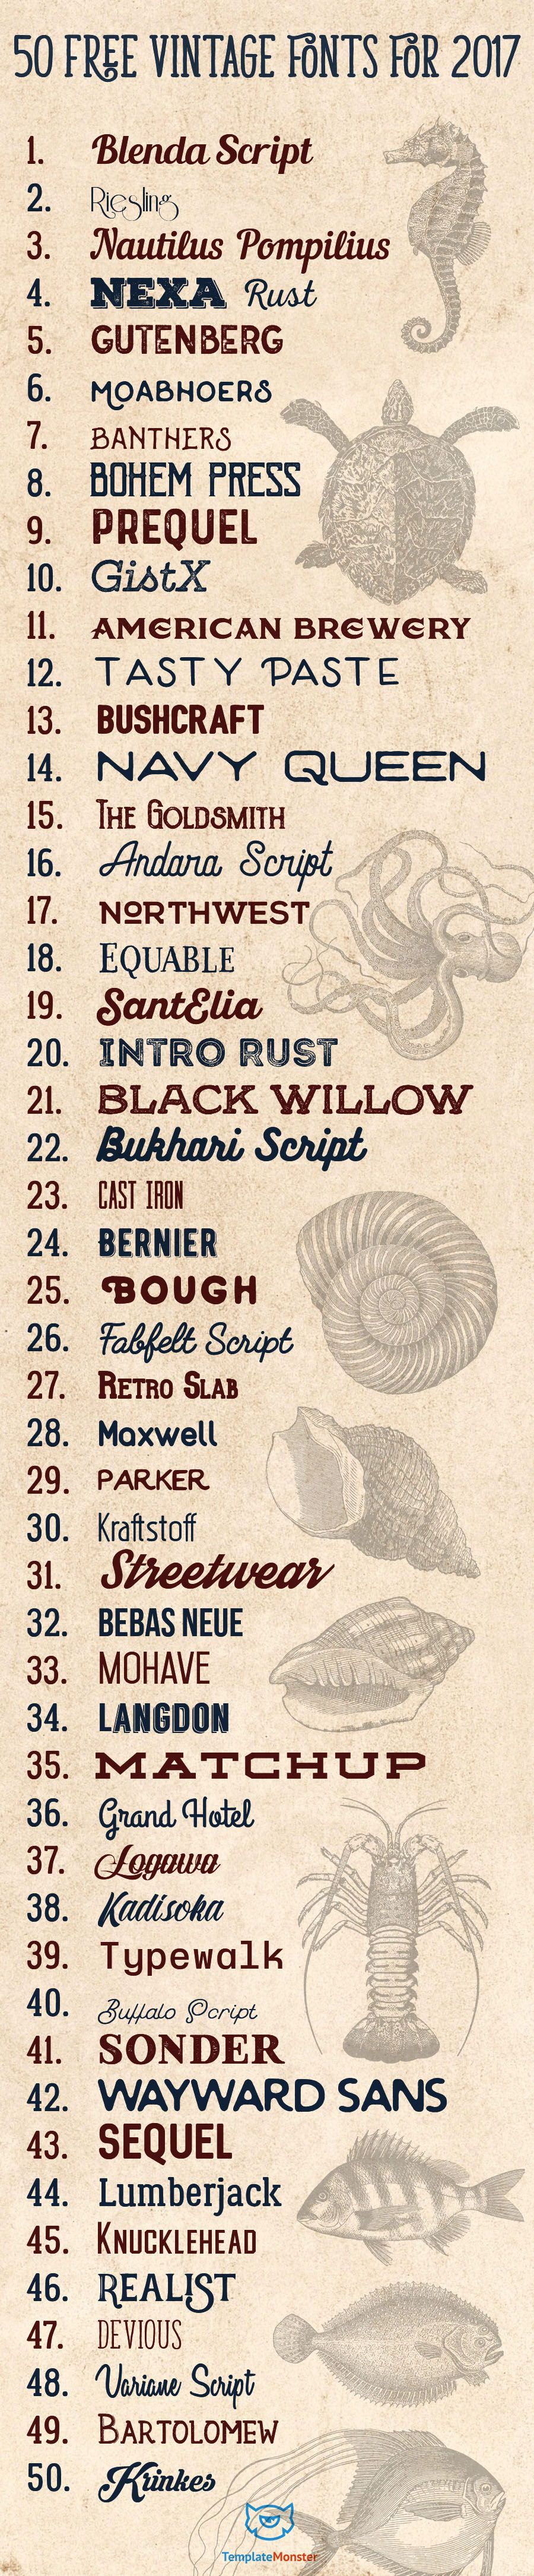 #Vintage #fonts that you can use instead of the nasty #Lobster